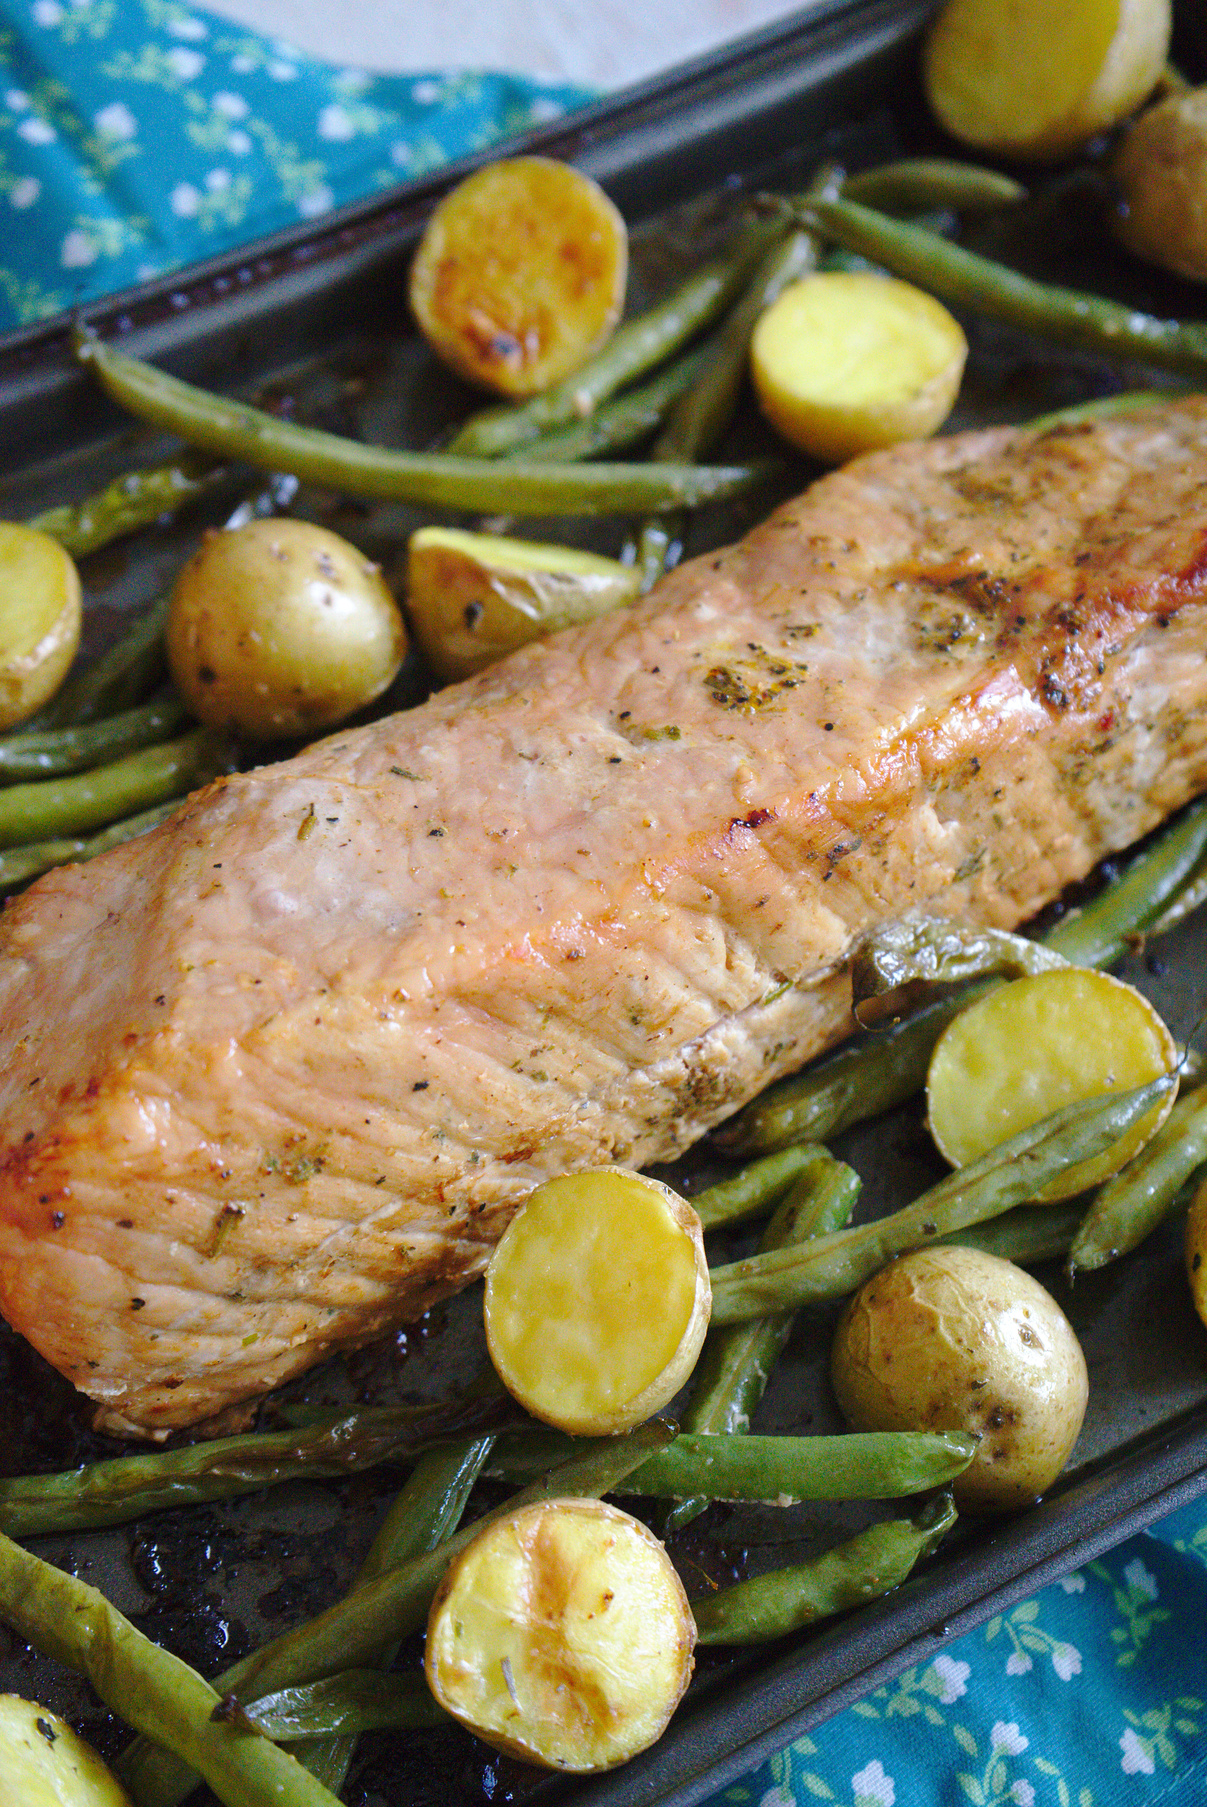 Sheet Pan Garlic Herb Pork and Veggies